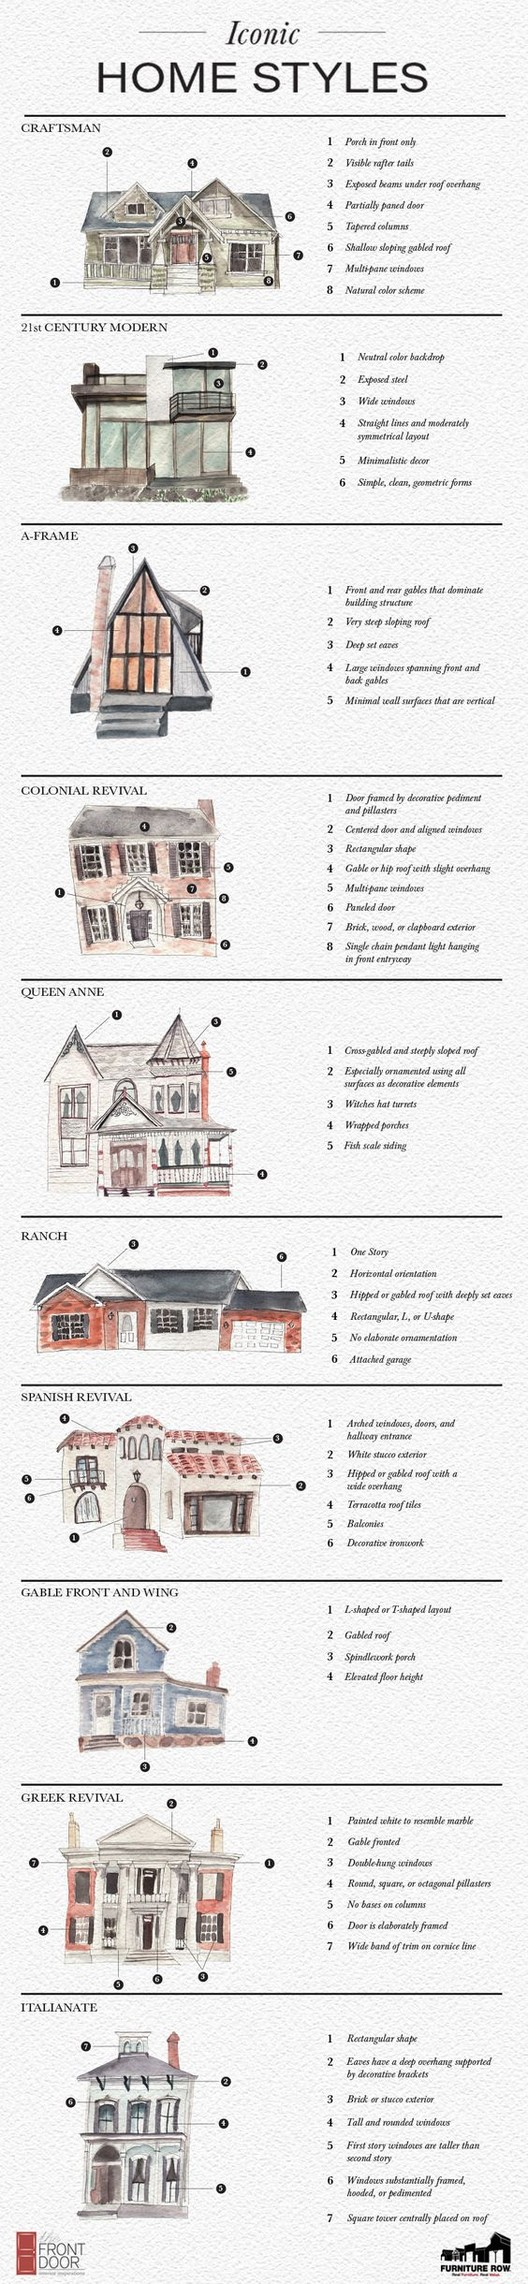 <a href='http://frontdoor.furniturerow.com/uncategorized/iconic-home-styles#.Wc1HytOGMWo'> The Front Door / via Pinterest</a>